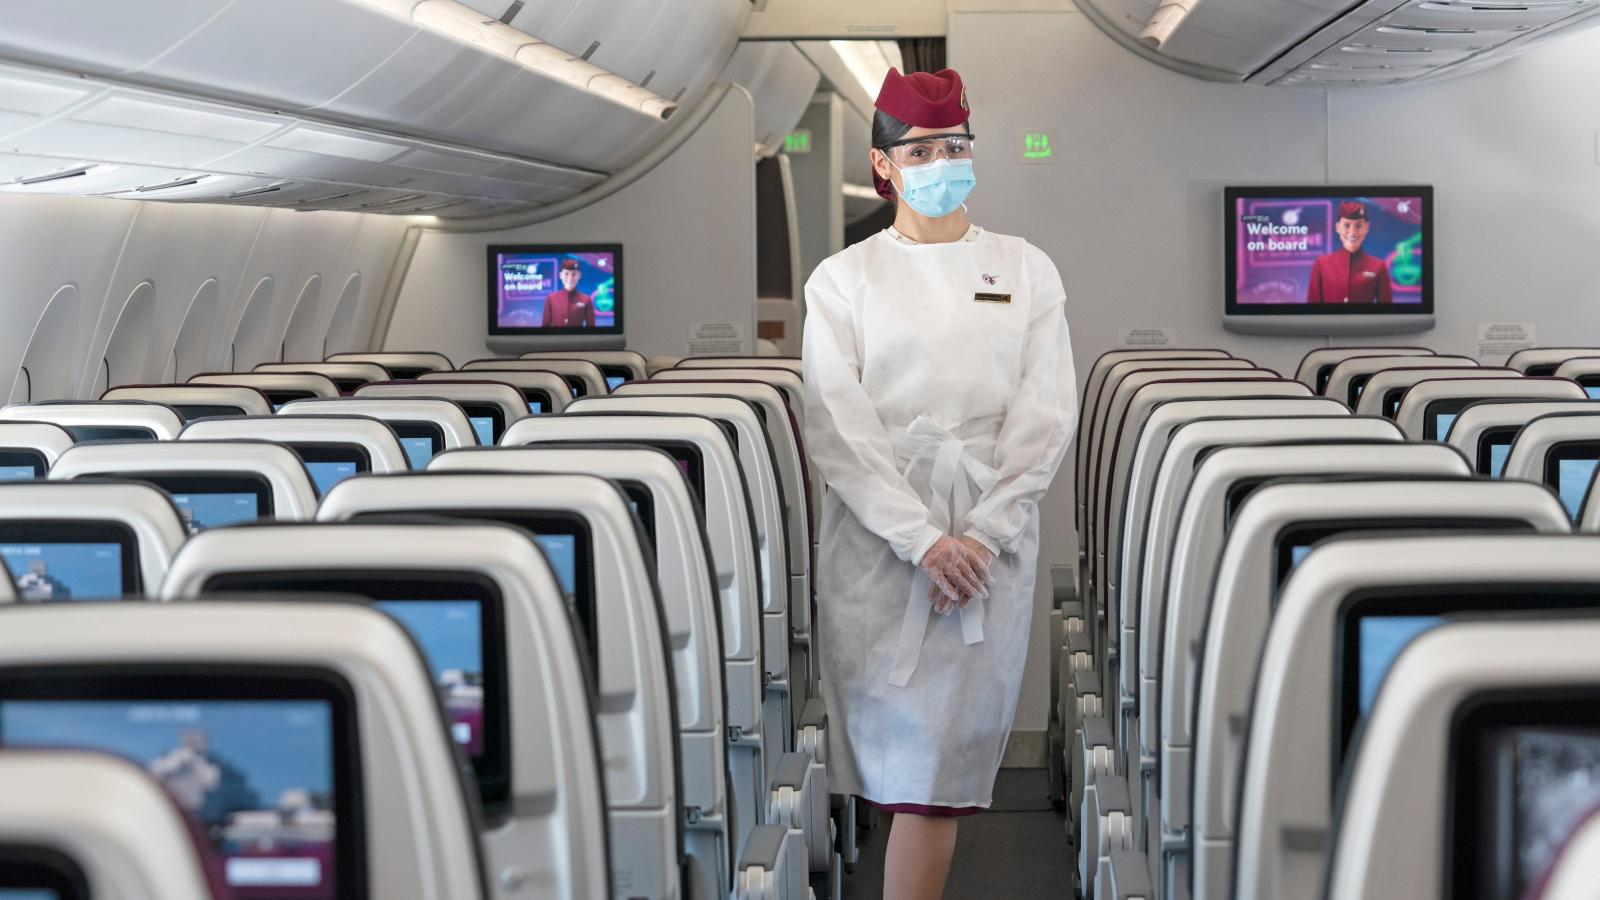 Qatar Airways has increased its health and safety measures for passengers and cabin crew